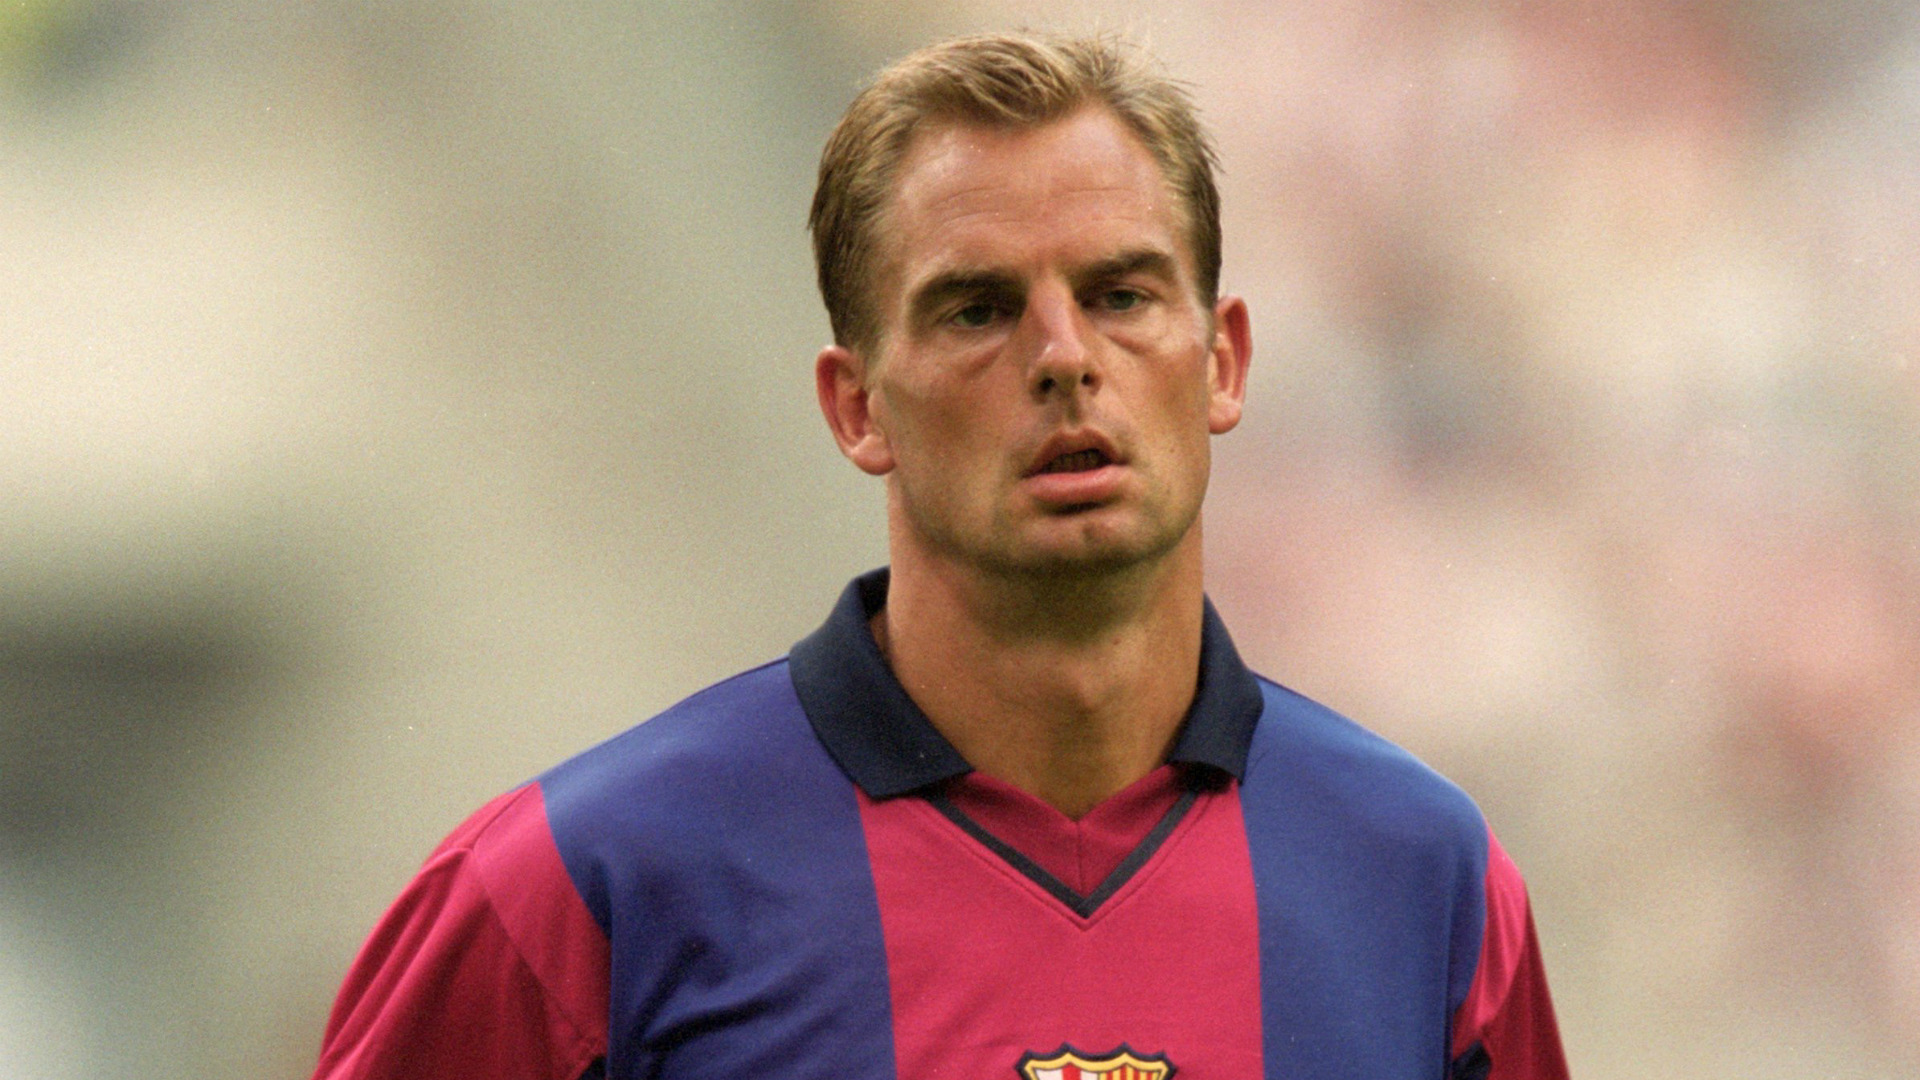 Ronald de Boer ex Barcelona player